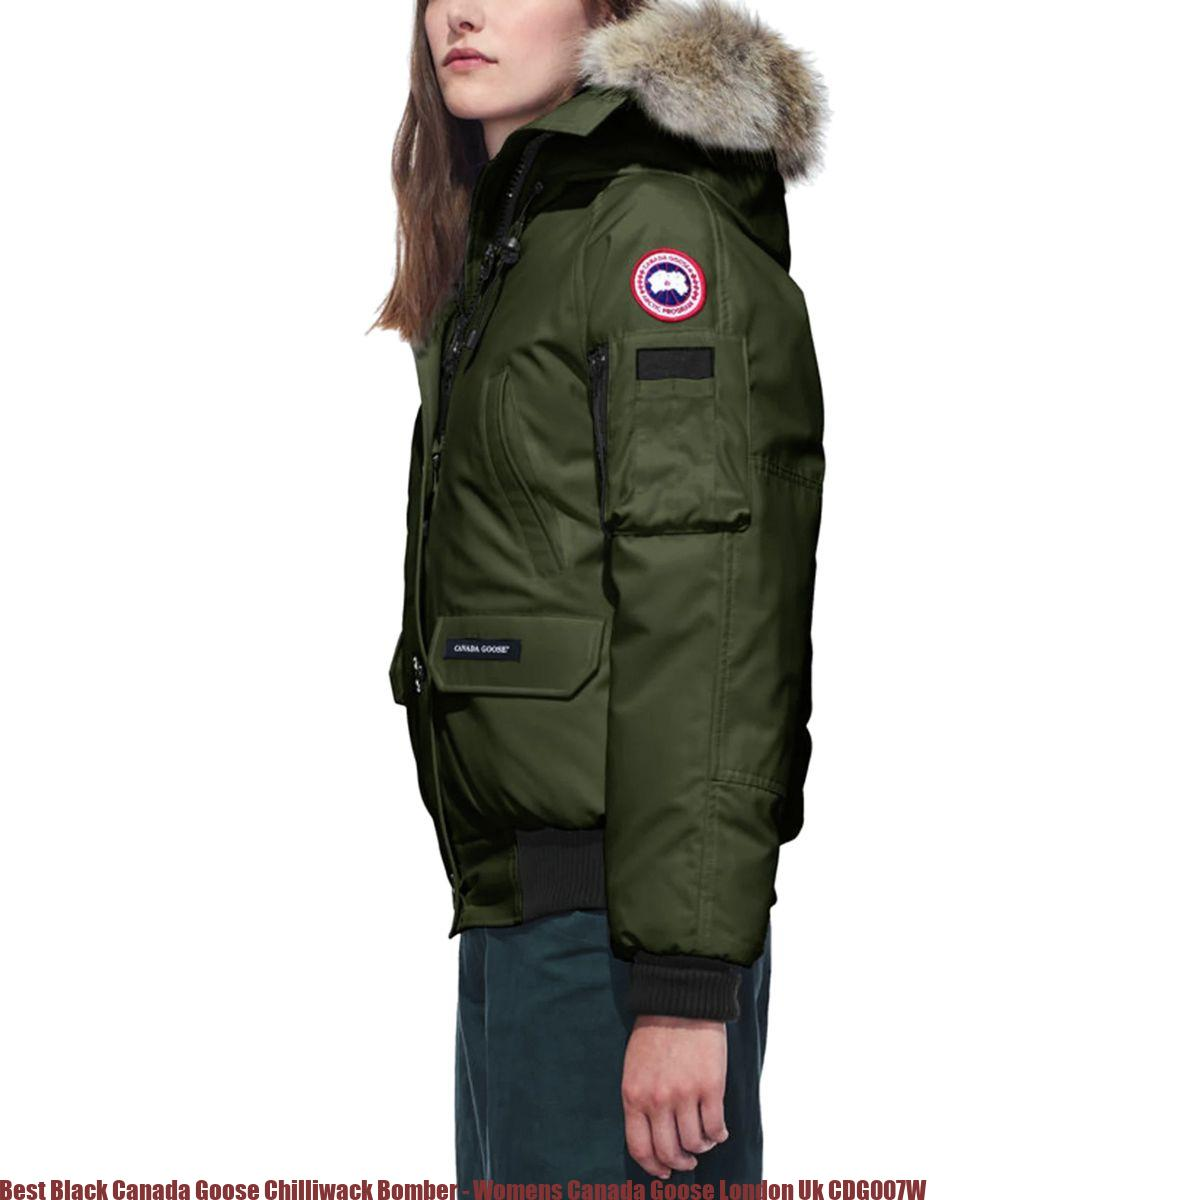 ec95332ac Best Black Canada Goose Chilliwack Bomber - Womens Canada Goose London Uk  CDG007W